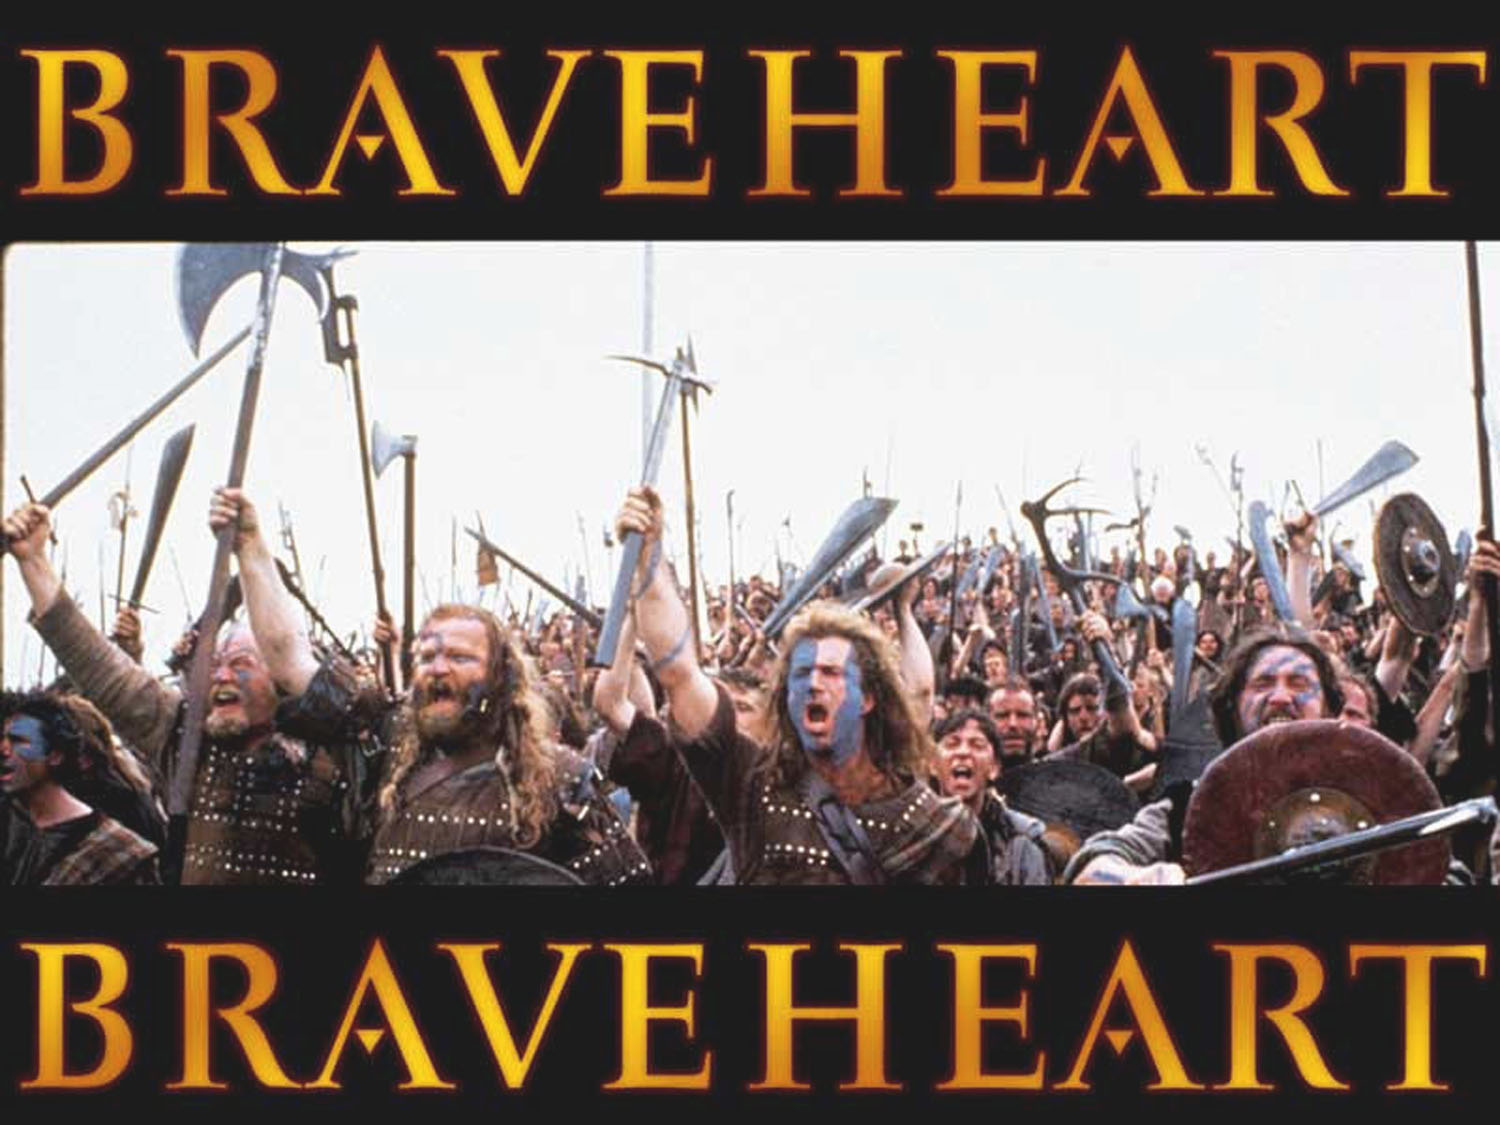 thesis statement braveheart Top 10 rhetorical analysis essay topics to make a sound thesis and give the arguments proving your speech rhetorically in mel gibson's braveheart.